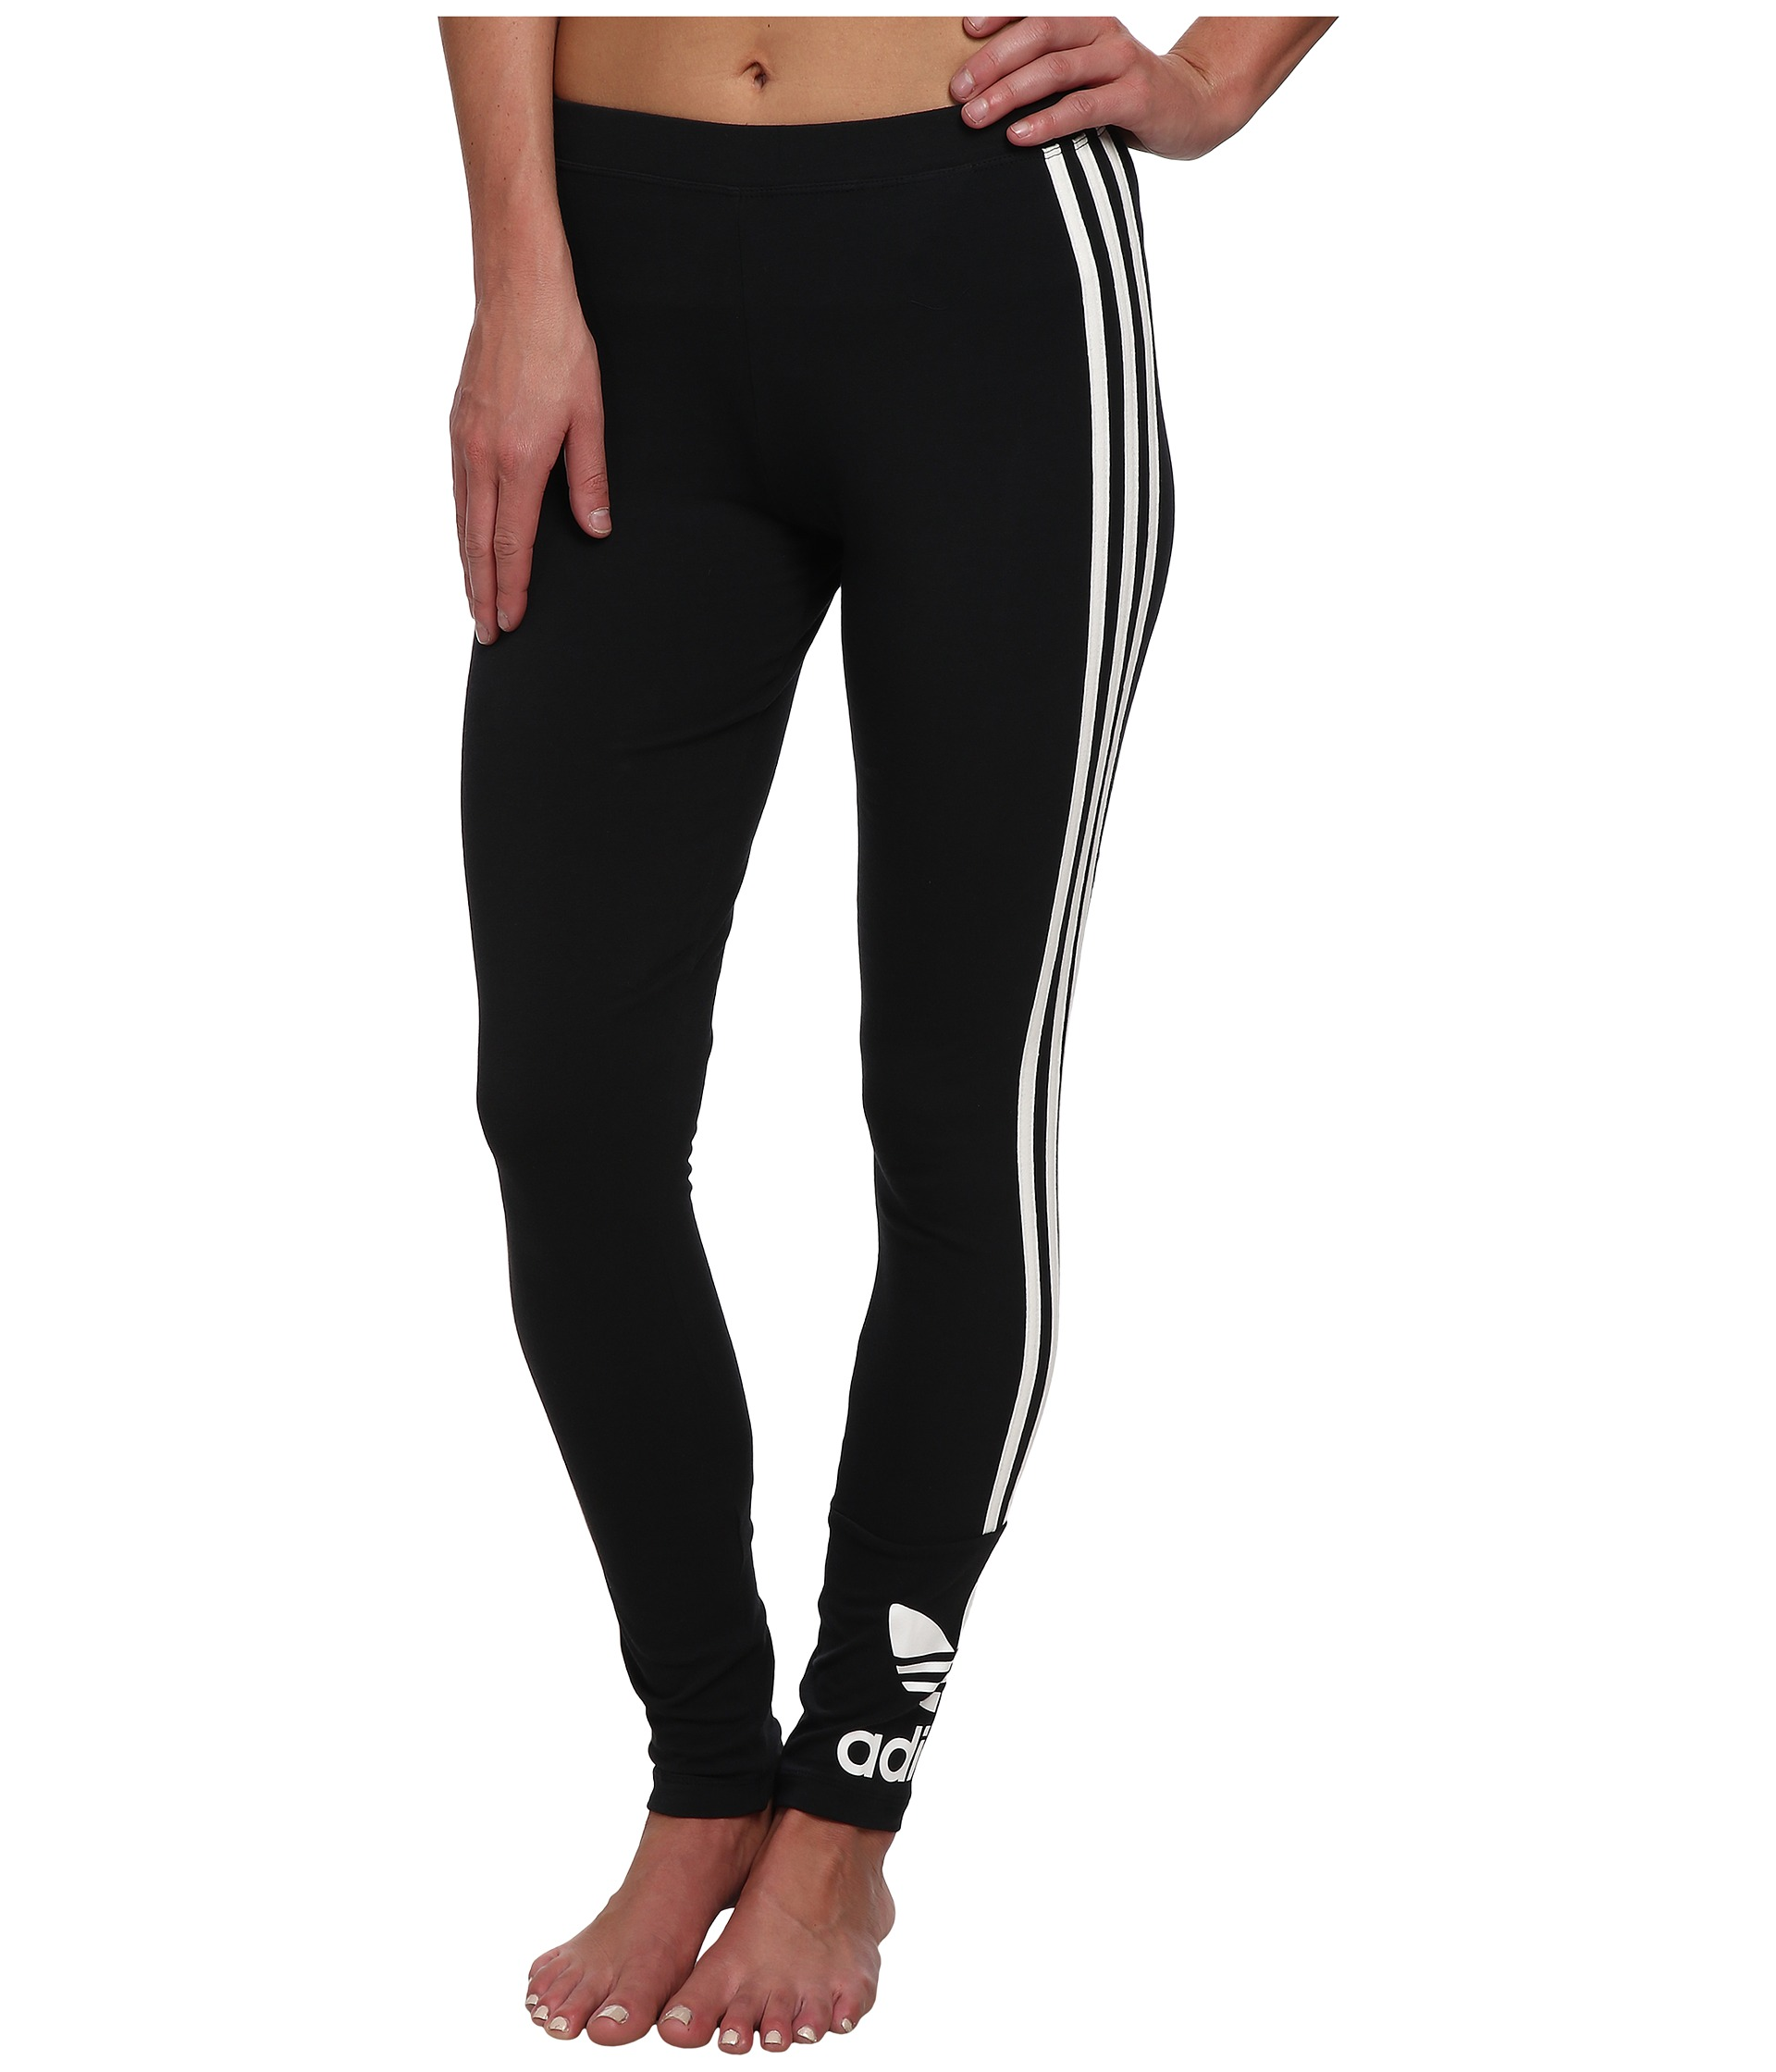 Adidas Originals Trefoil Leggings - Zappos.com Free Shipping BOTH Ways